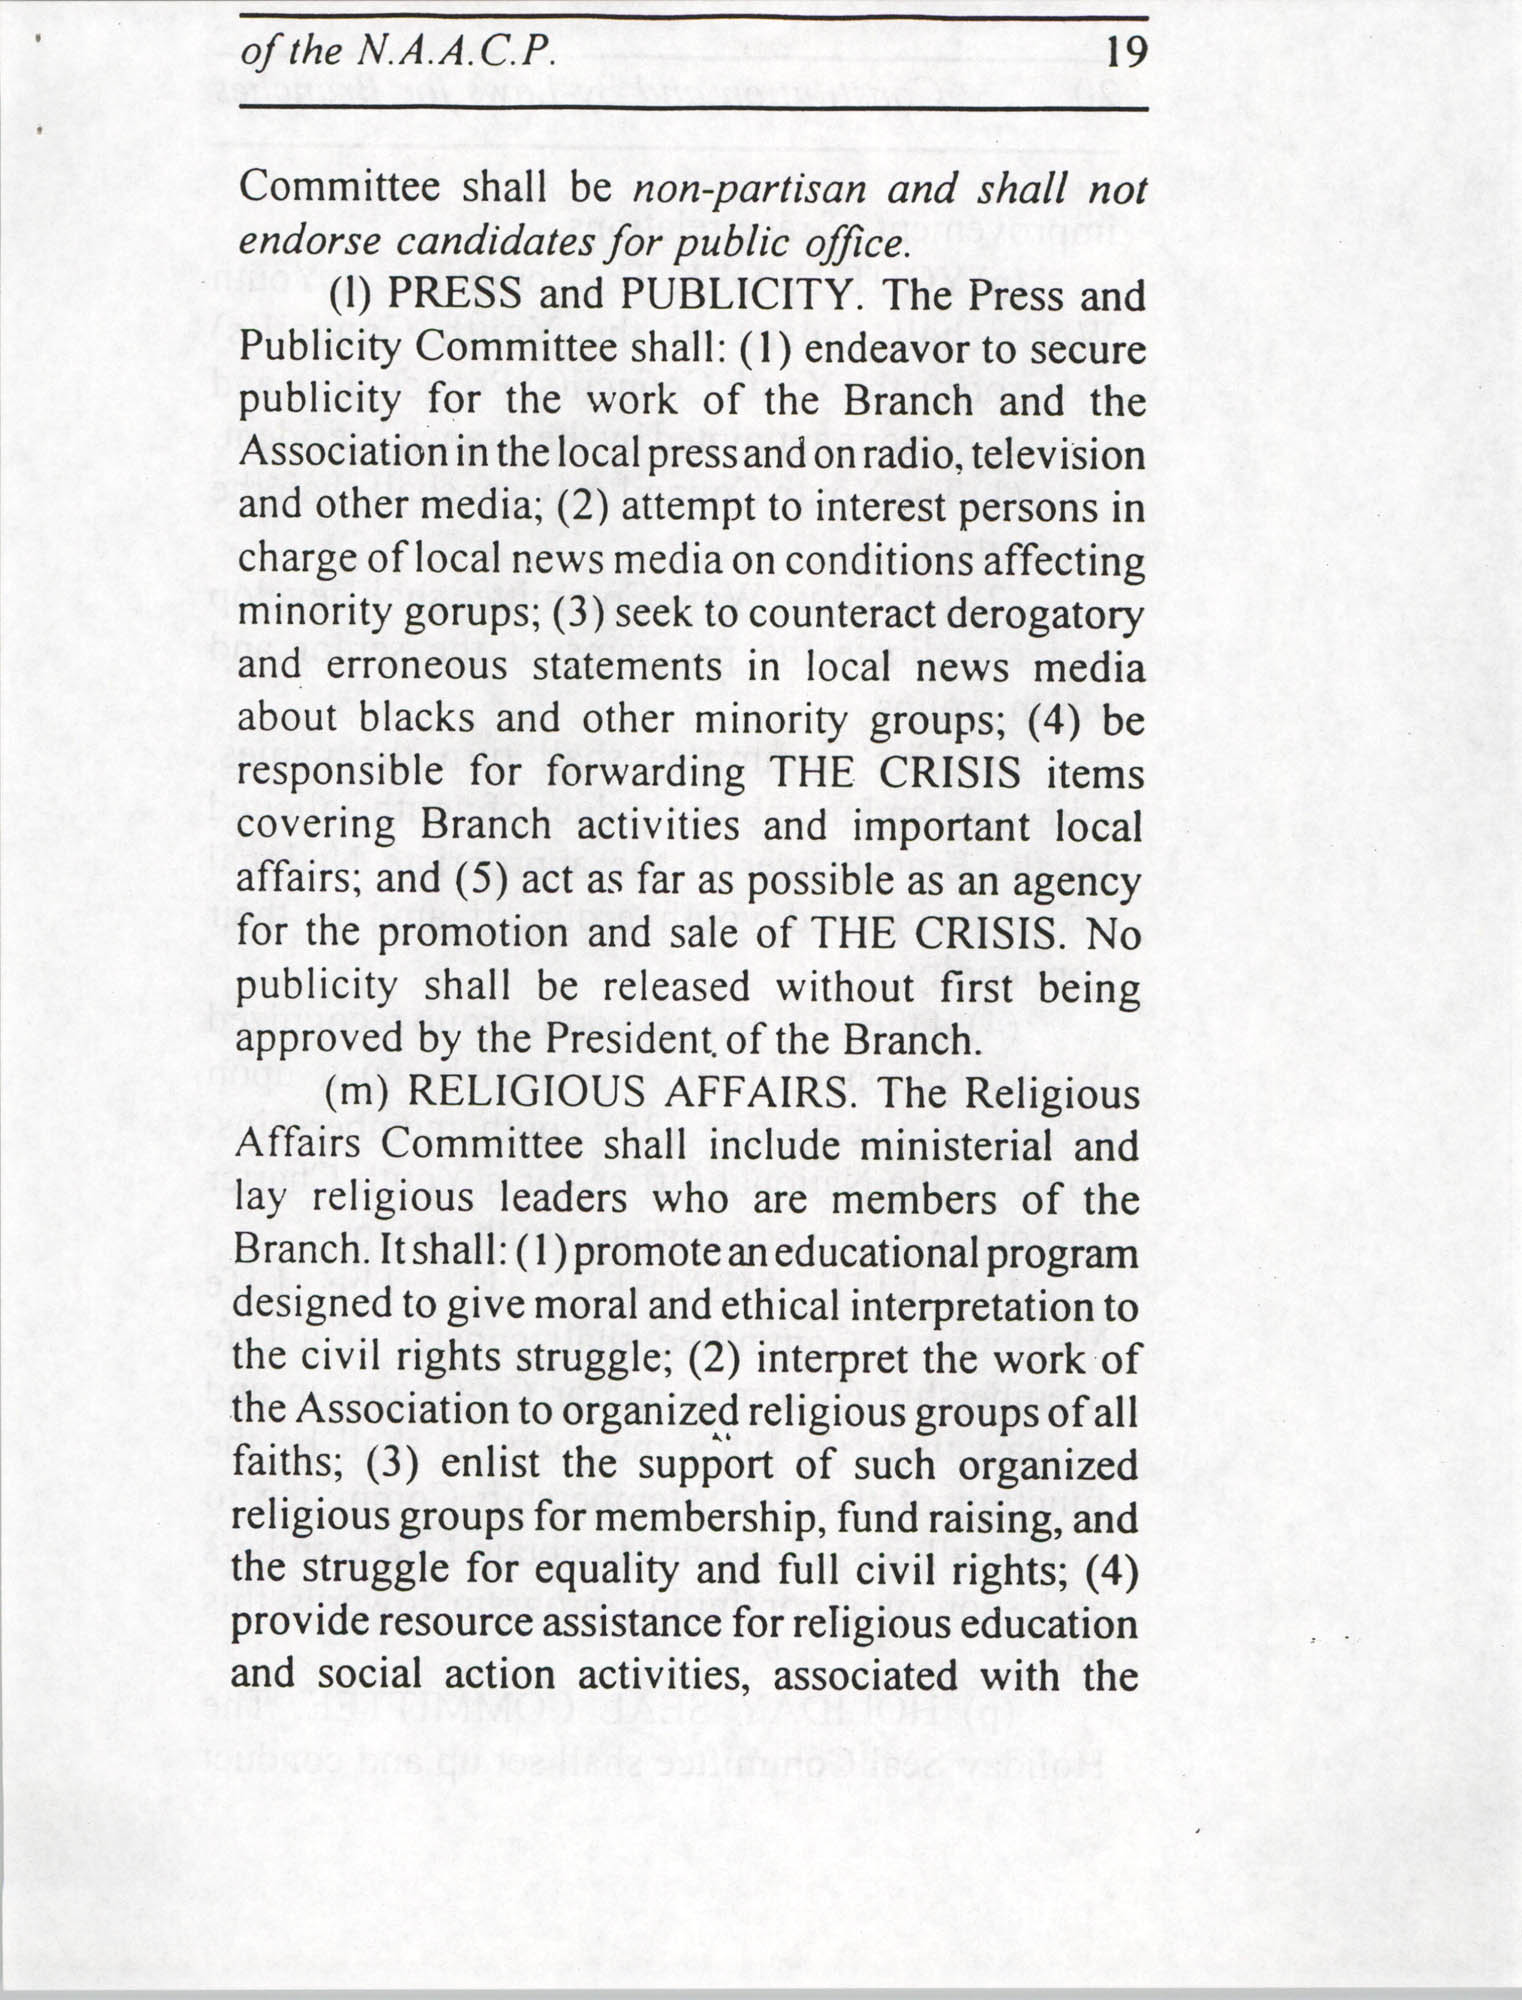 Constitution and By-Laws for Branches of the NAACP, July 1994, Page 19